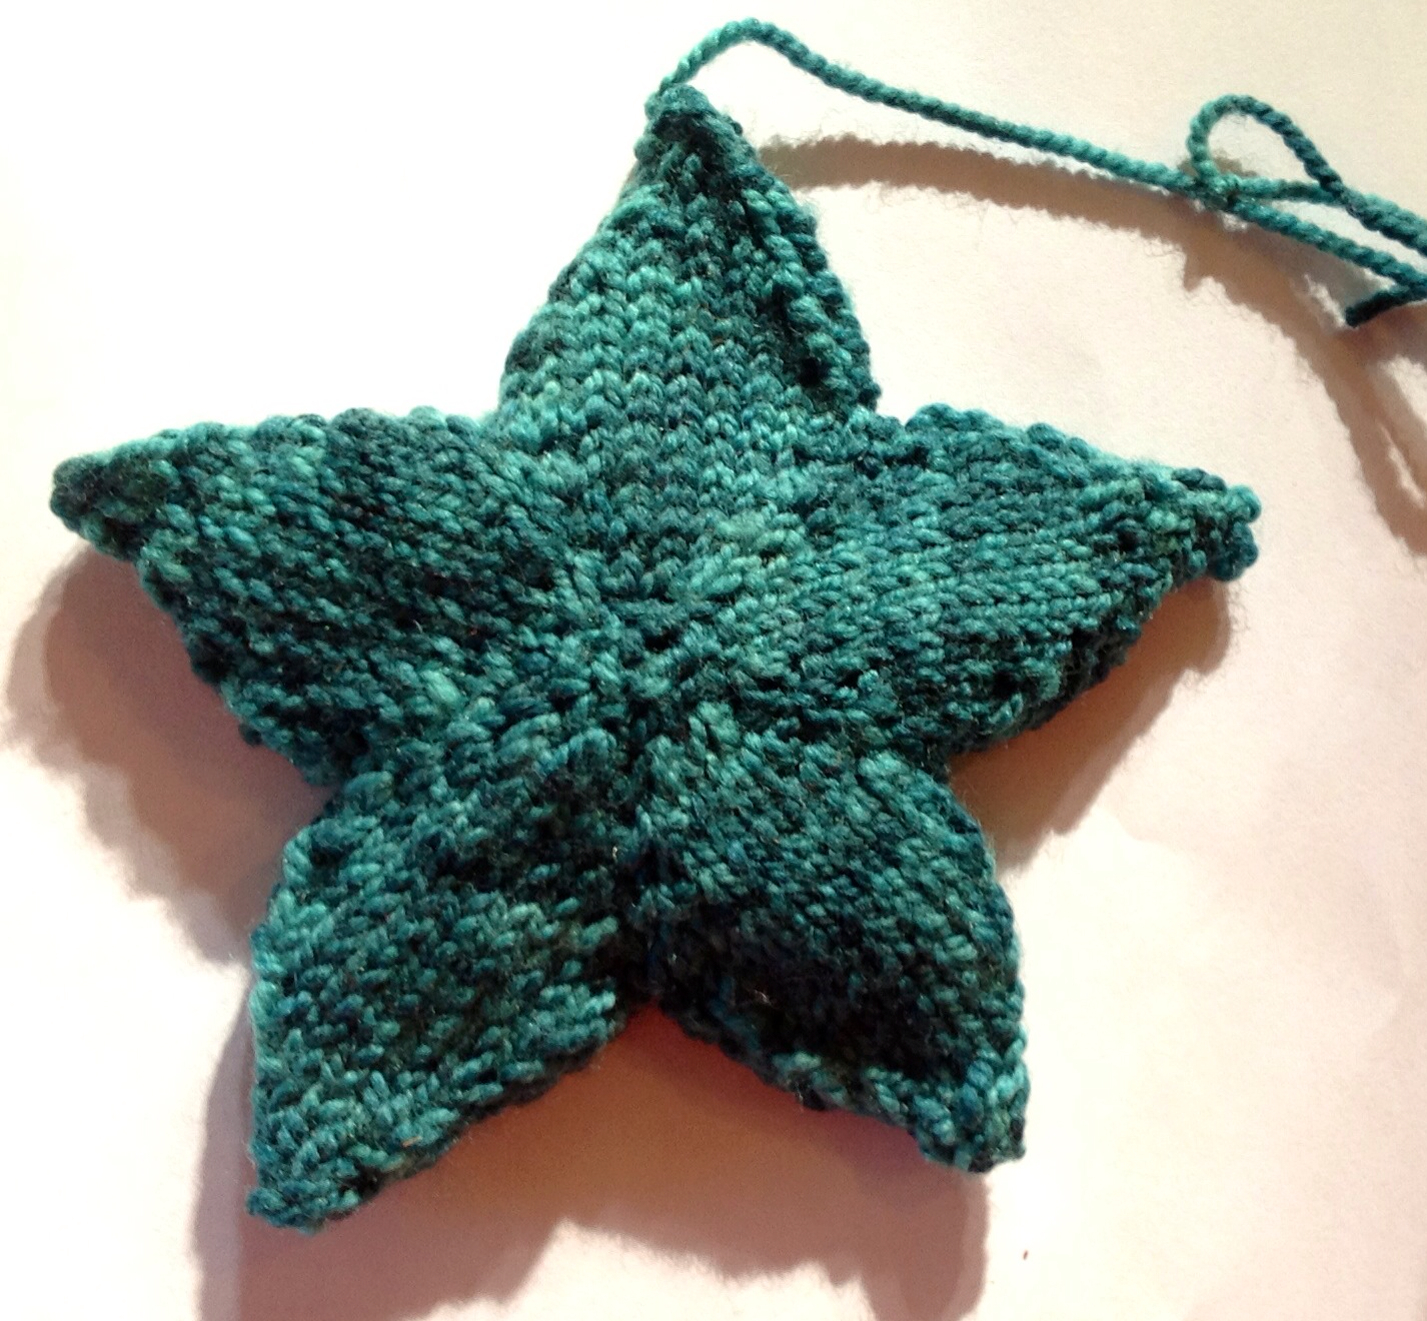 Simple Knitting Patterns Christmas Decorations : The Reluctant Knitter: Knitted borders and simple star ornament